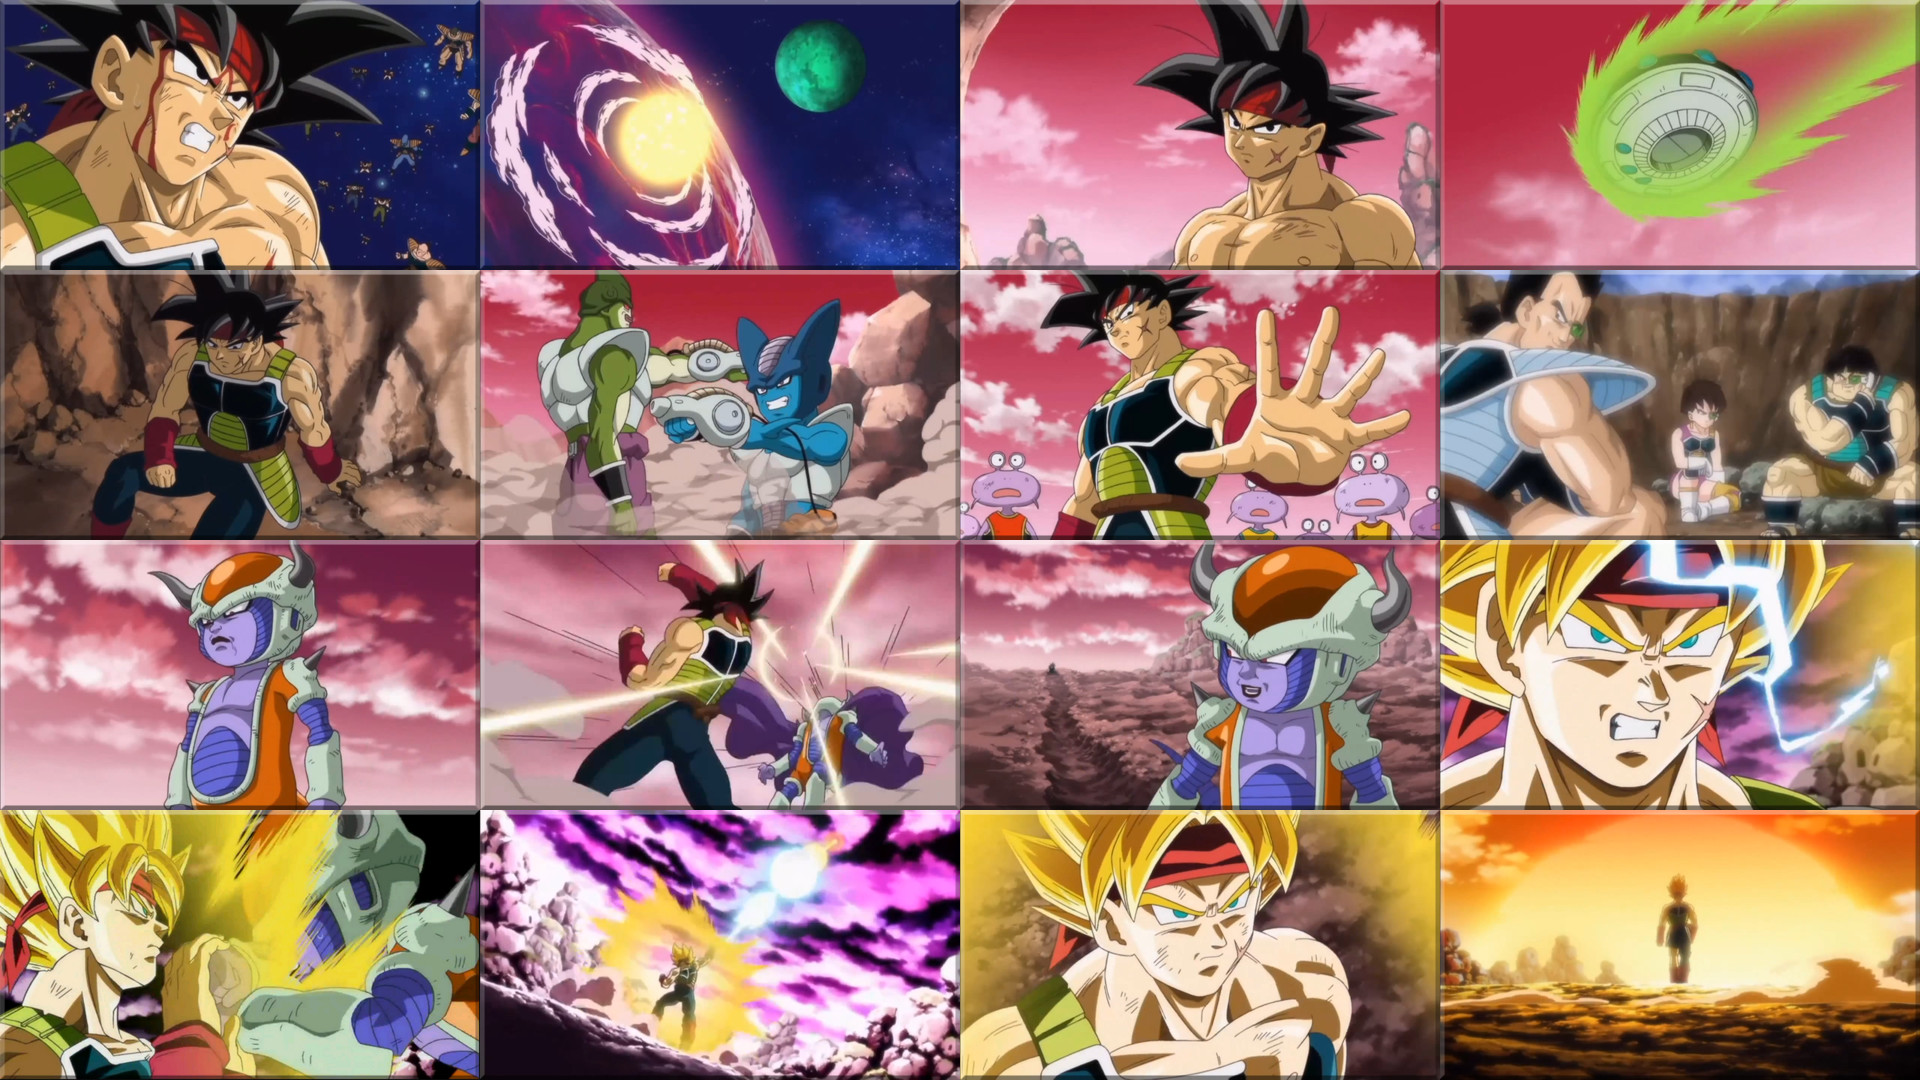 … Dragon Ball Z – Episode of Bardock by GT4tube